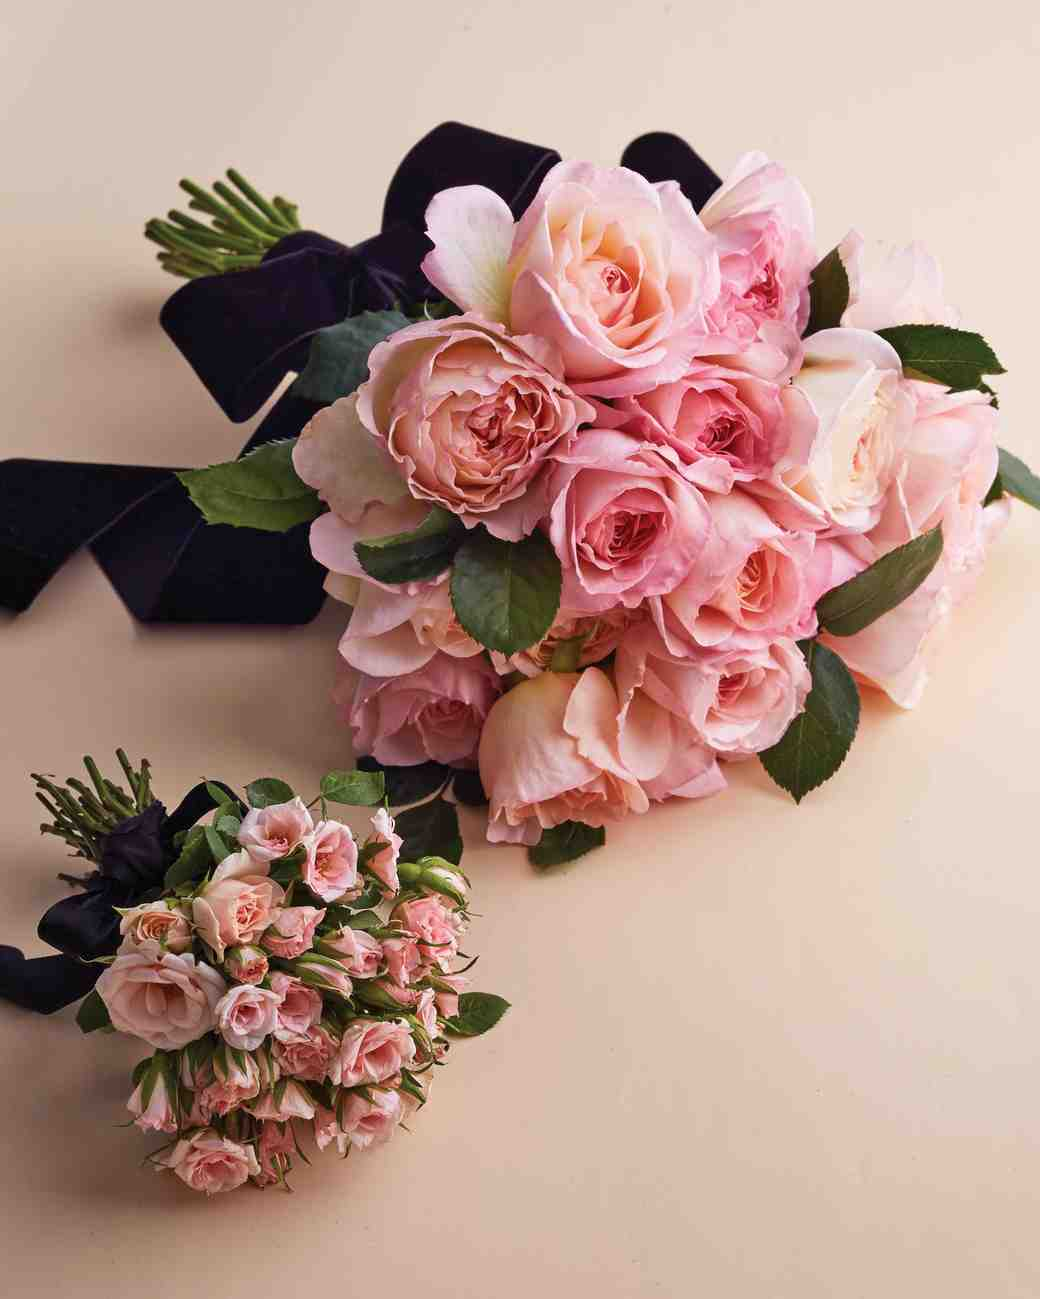 Ideas For Wedding Flowers: Pretty In Pink Wedding Bouquet Ideas